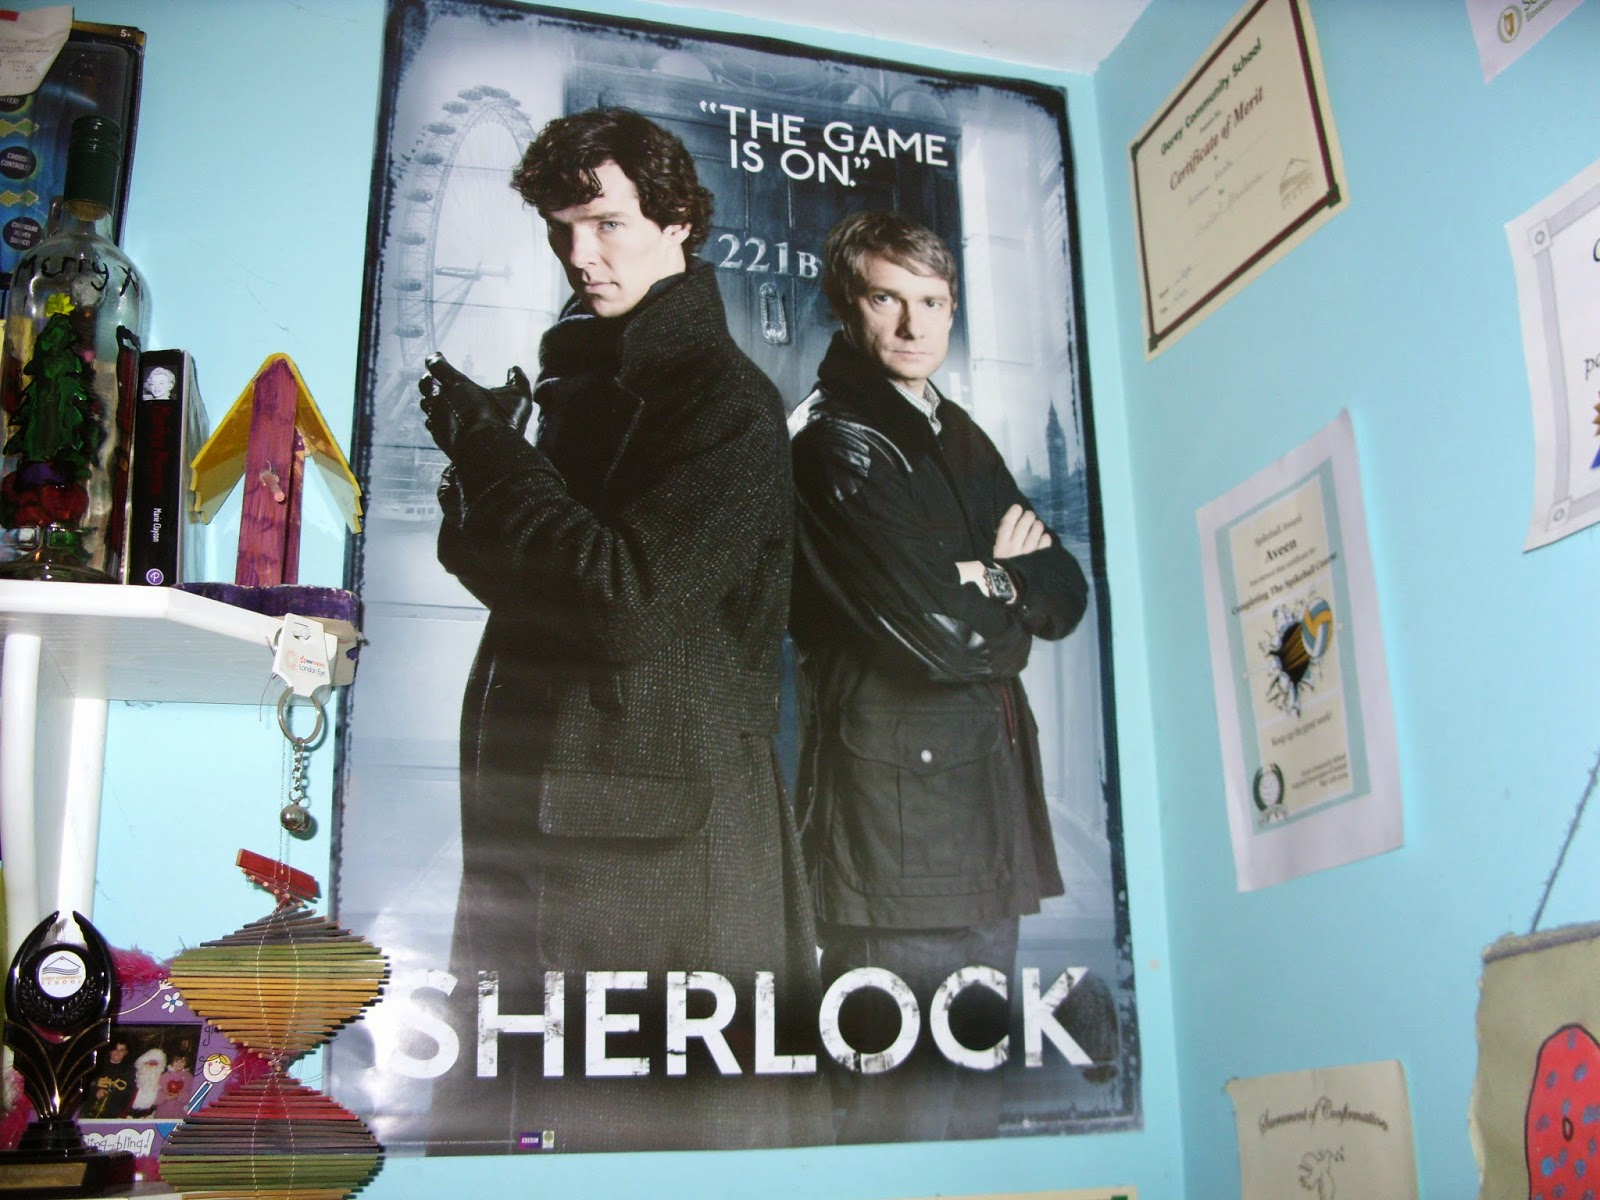 I have to write a letter essay to Sherlock Holmes... What should I write? Help! THXX?